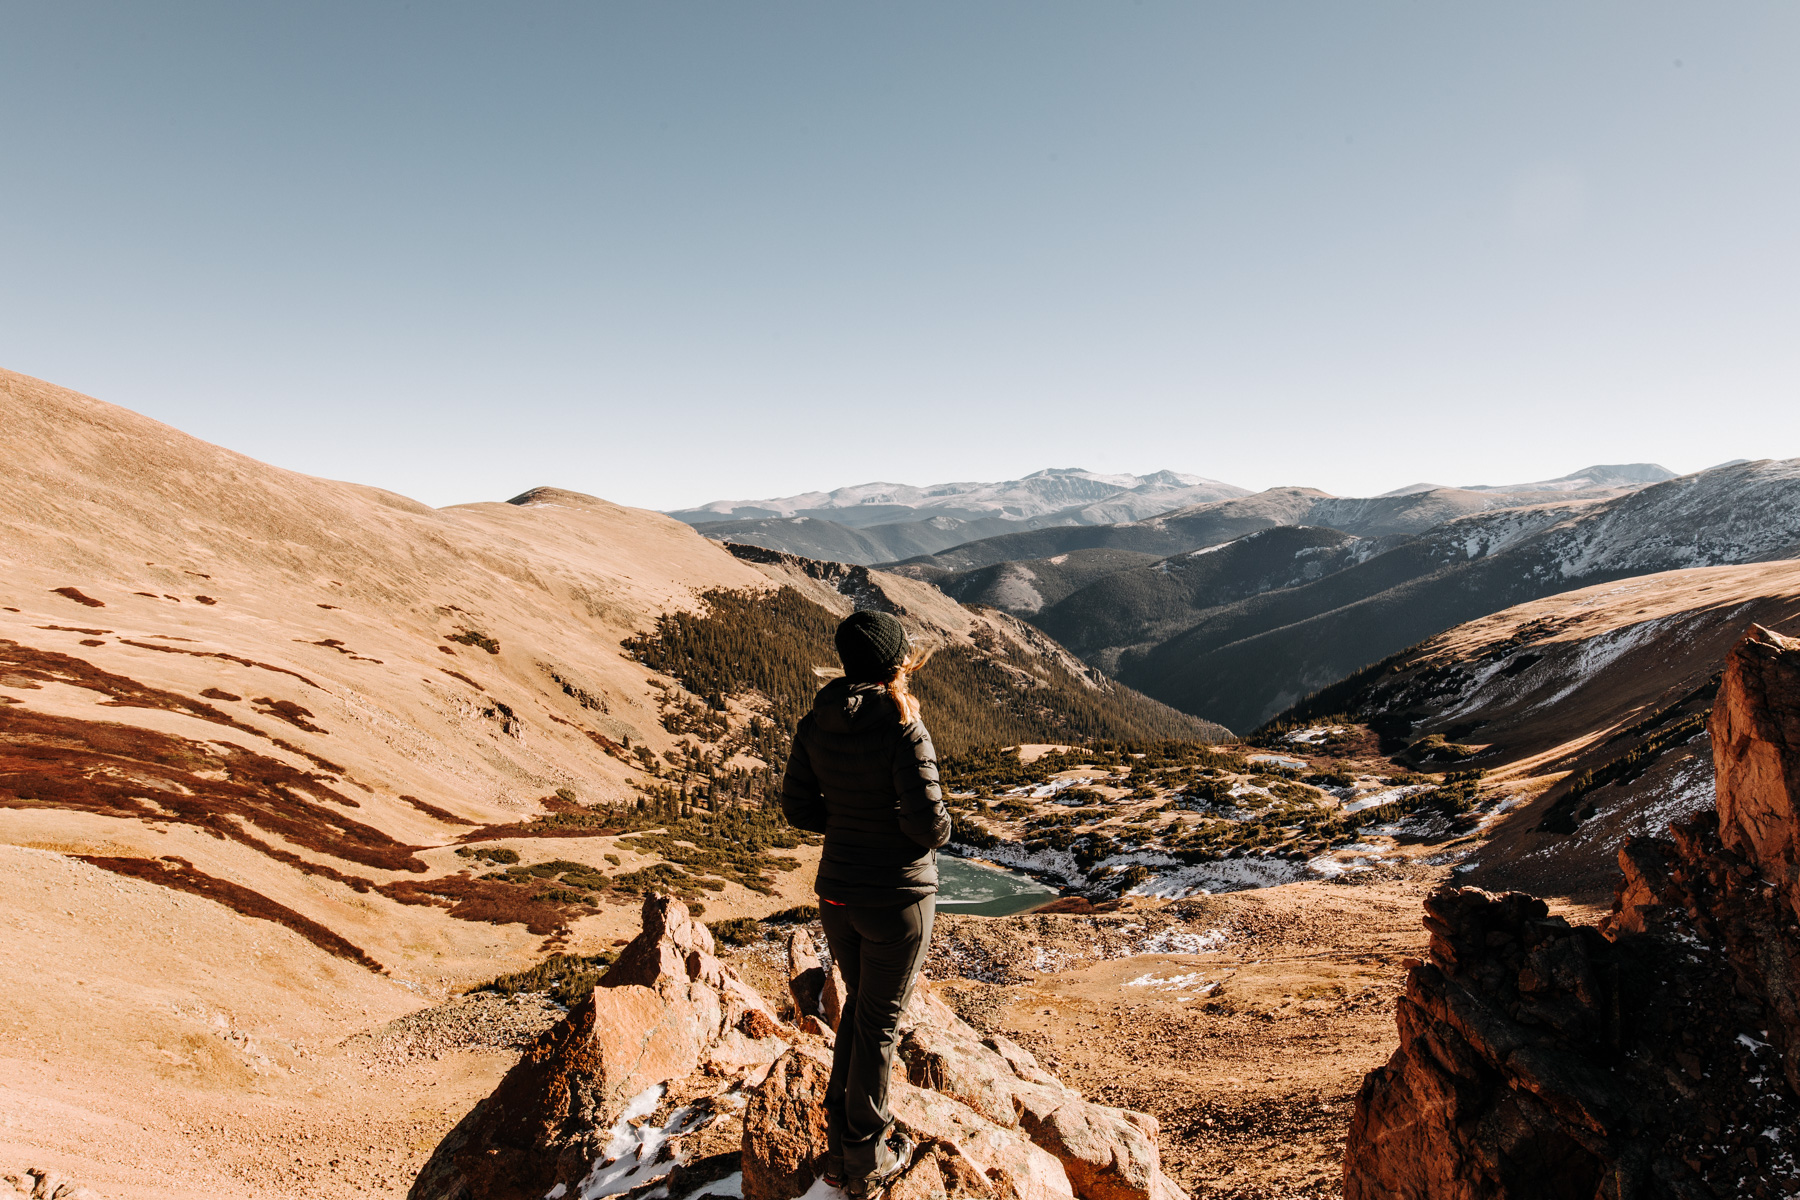 The 10 Best Hikes and Trails Near Denver | Mount Flora, Winter Park